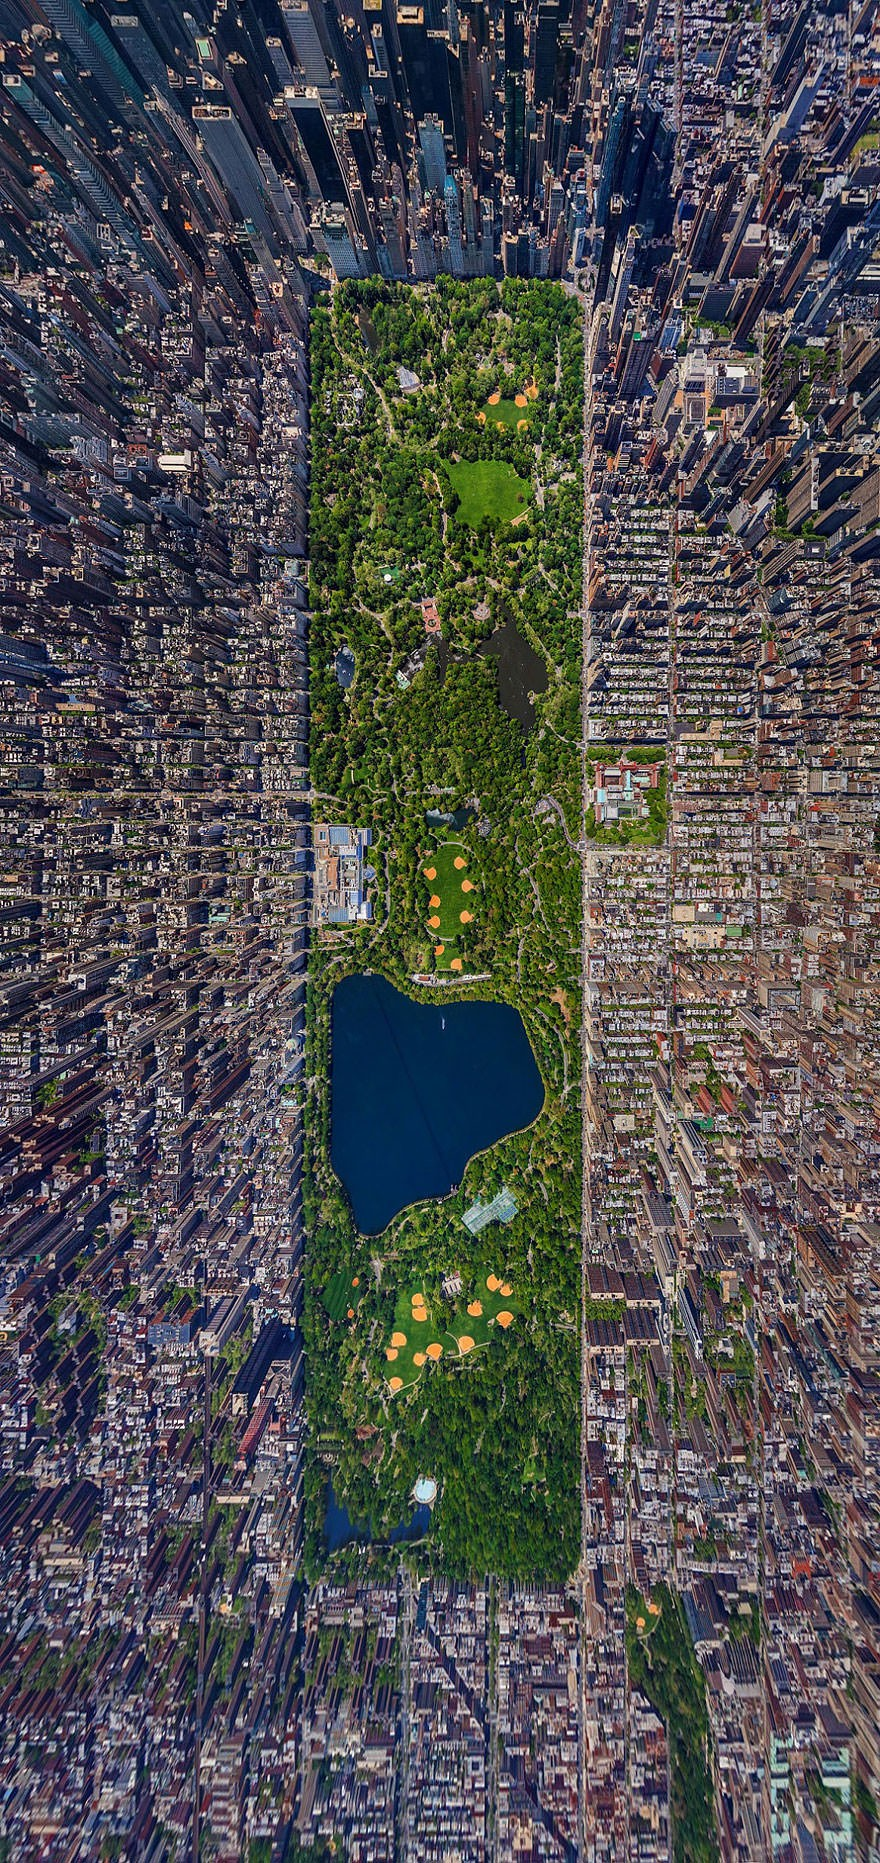 Central Park, New York City2.jpg